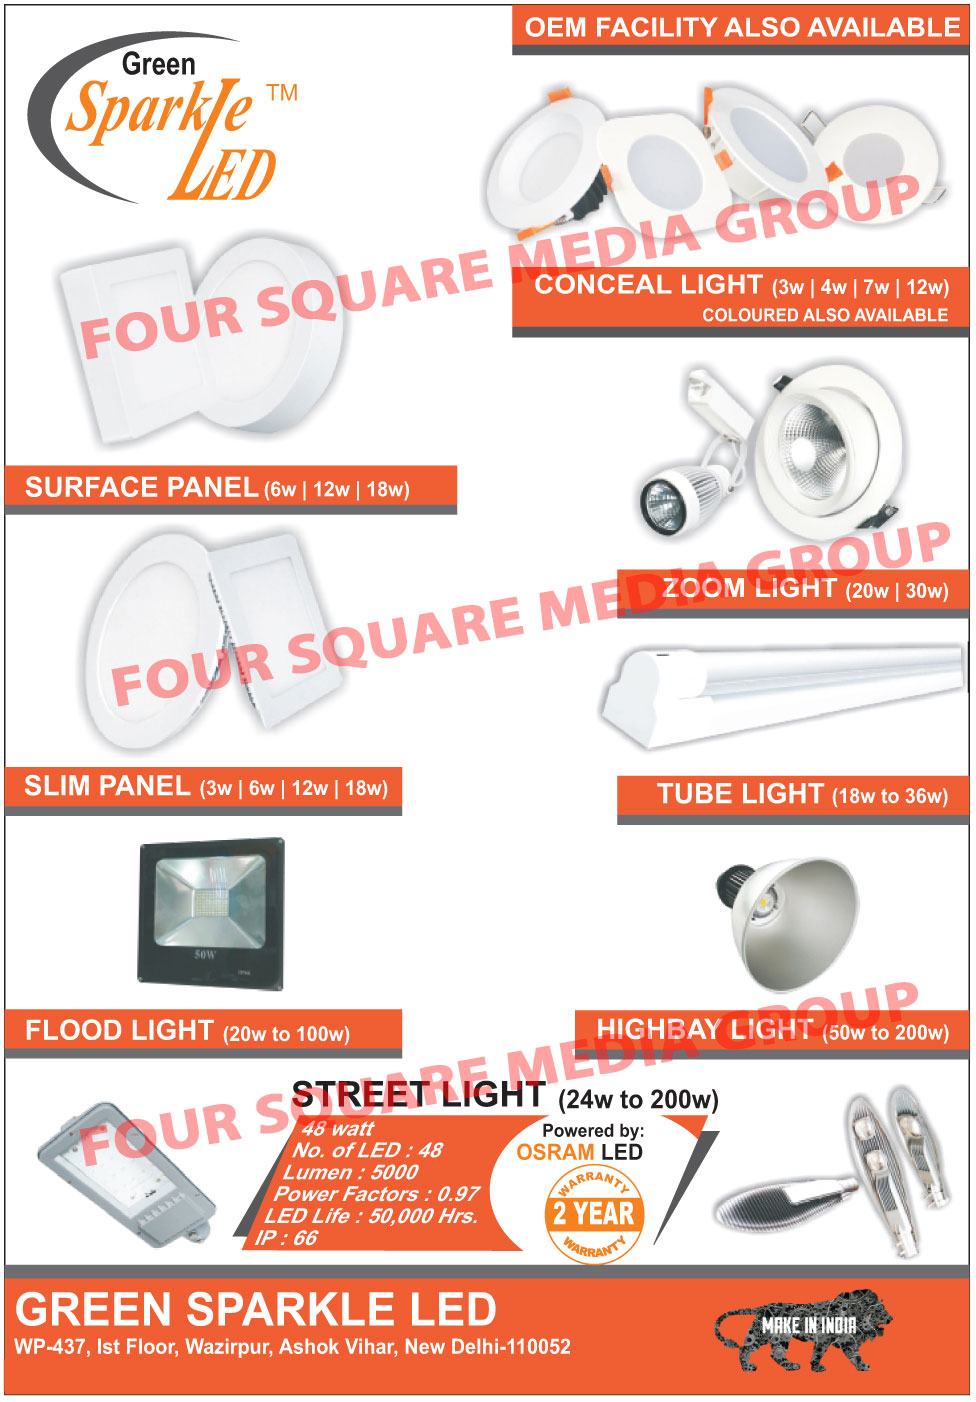 Led Lights, Conceal Lights, Surface Panels, Surface Panel Lights, Slim Panels, Slim Panel Lights, Flood Lights, Zoom Lights, Tube Lights, High Bay Lights